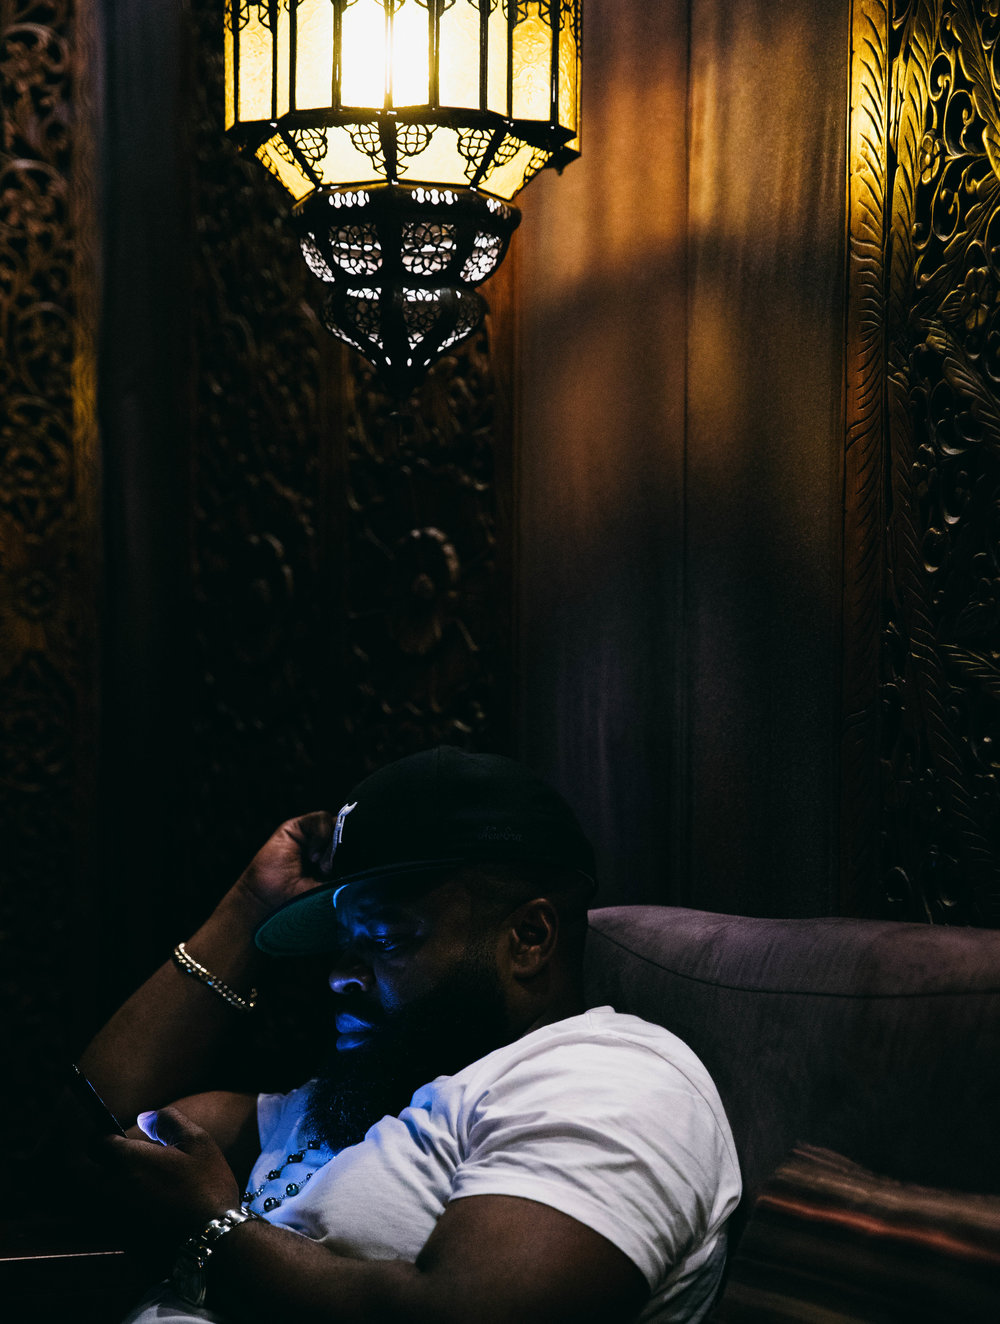 THE MAKING OF - A look at the creative process behind Streams of Thought Vol. 1, with Black Thought and 9th Wonder in the studio.